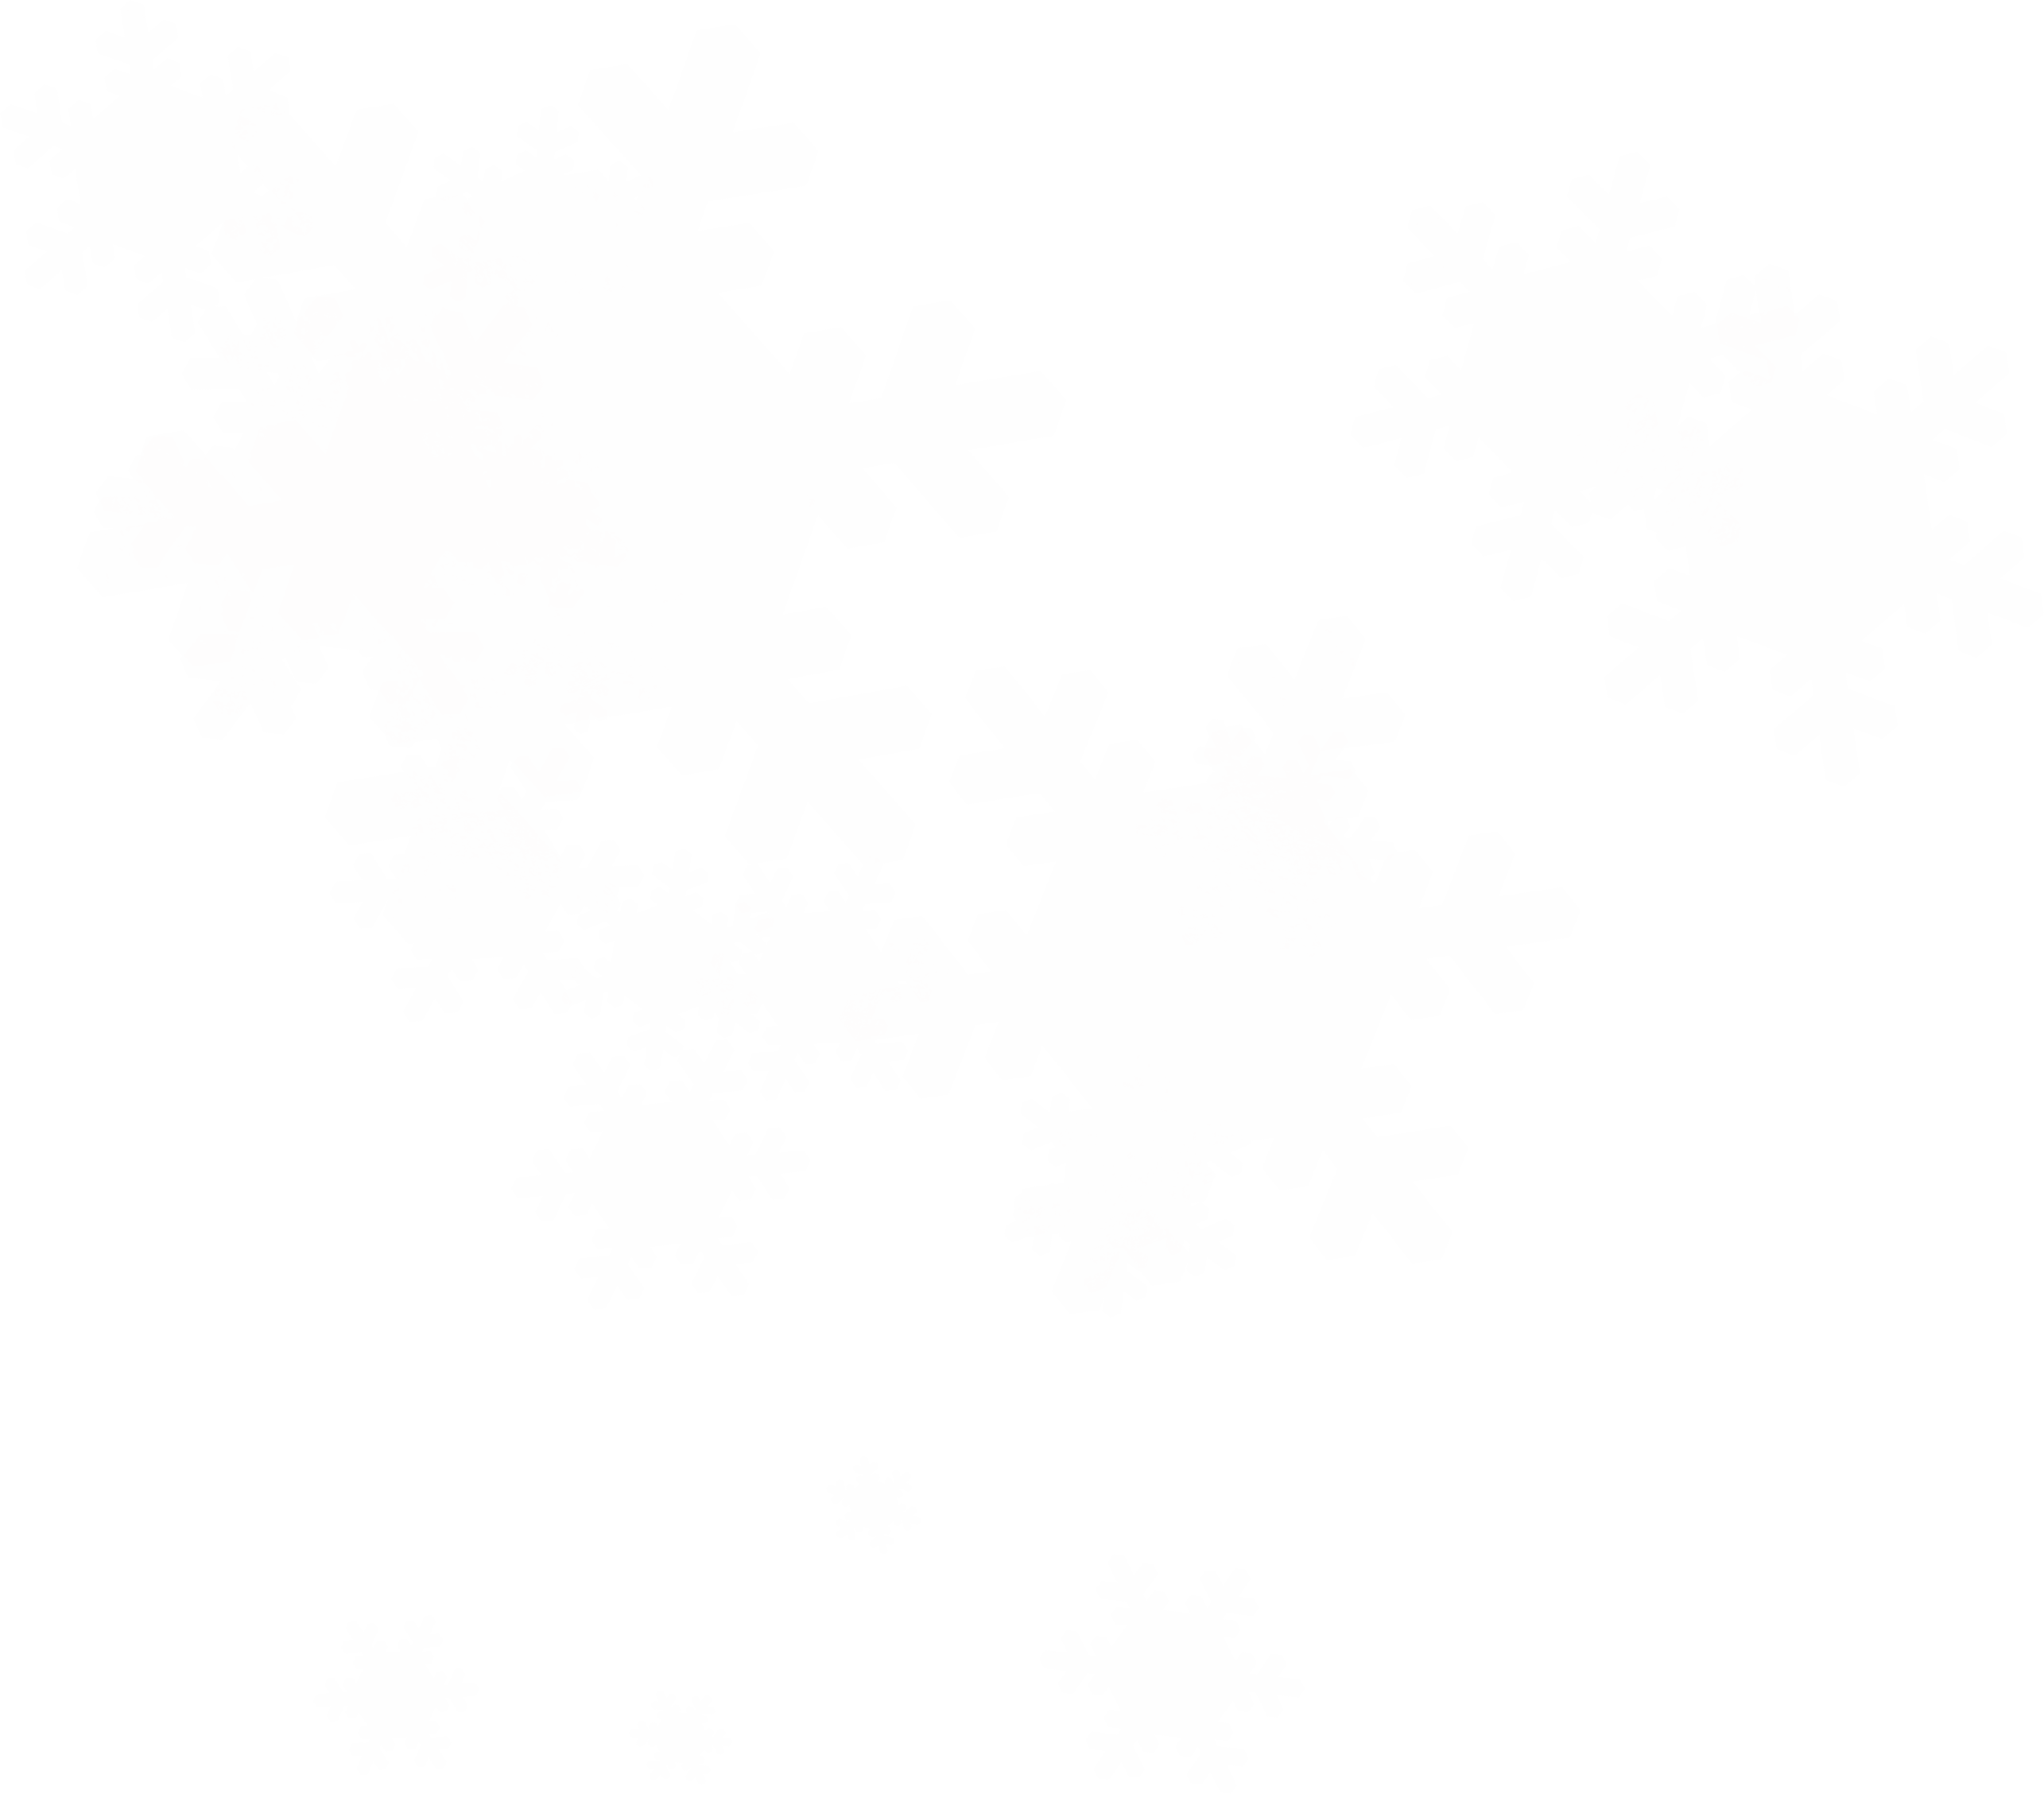 Snowflakes PNG images free download